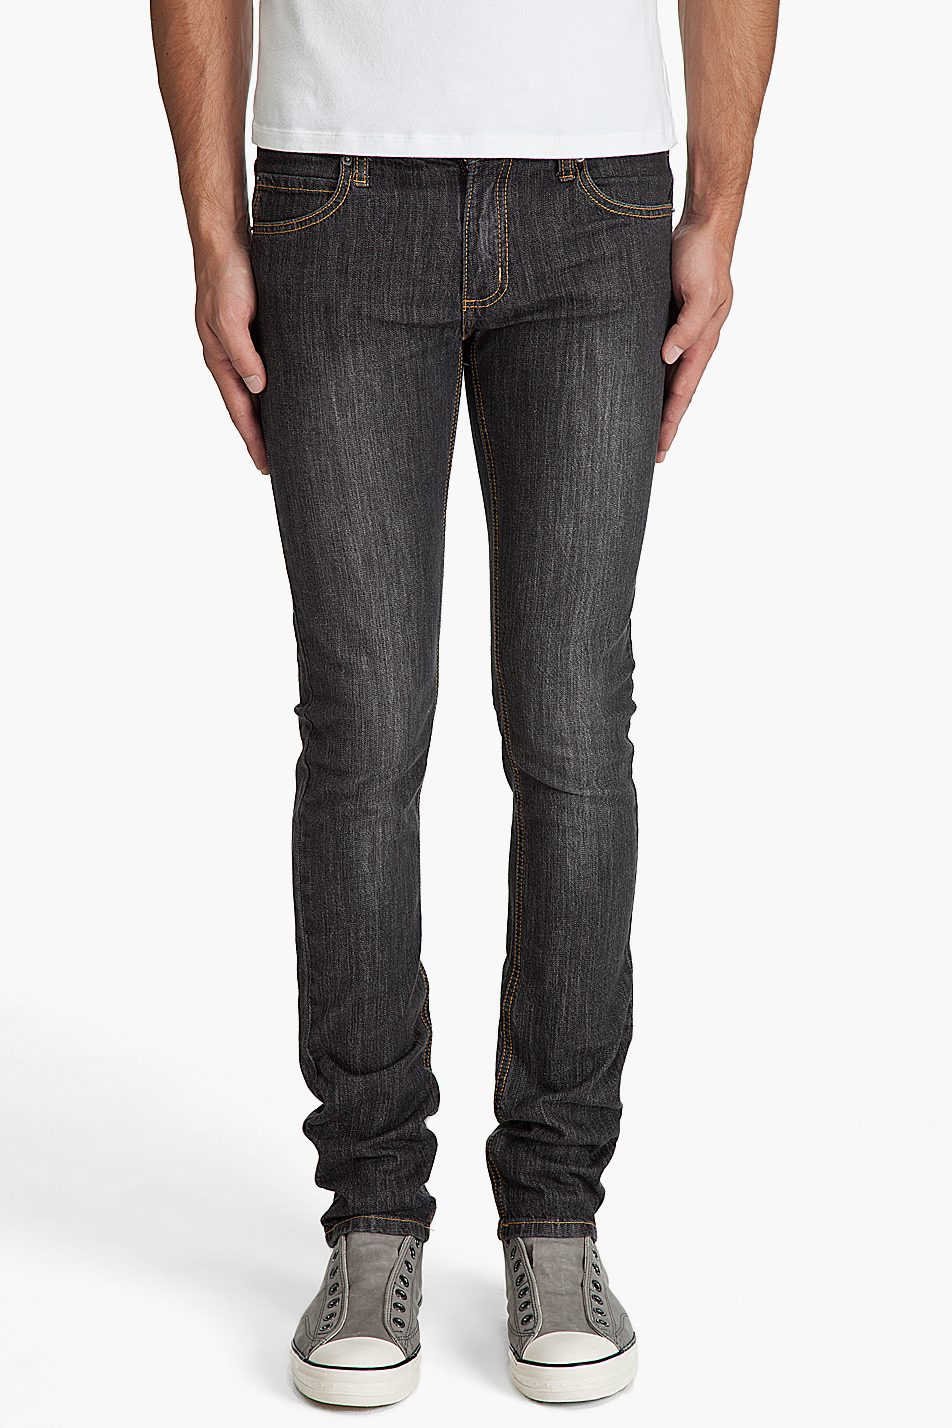 Cheap monday Narrow Washed Black Jeans in Black for Men | Lyst